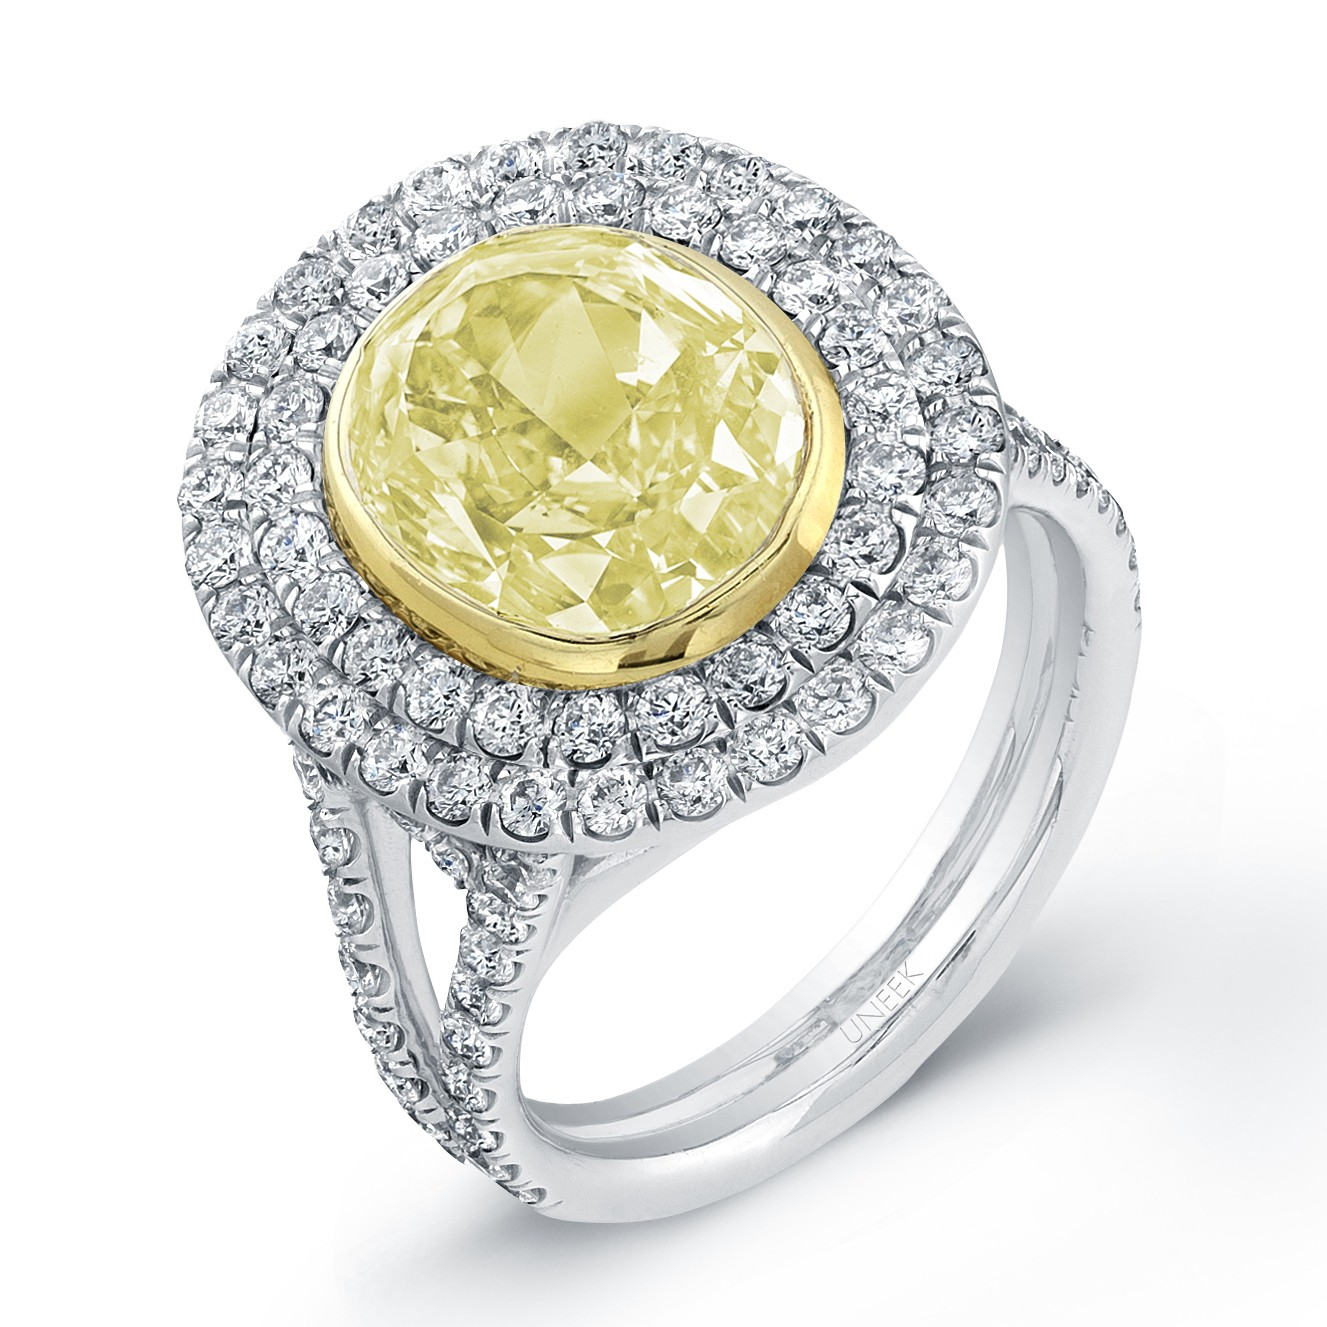 Double Gold Platinum: Uneek Oval Yellow Diamond Double Halo Engagement Ring, In